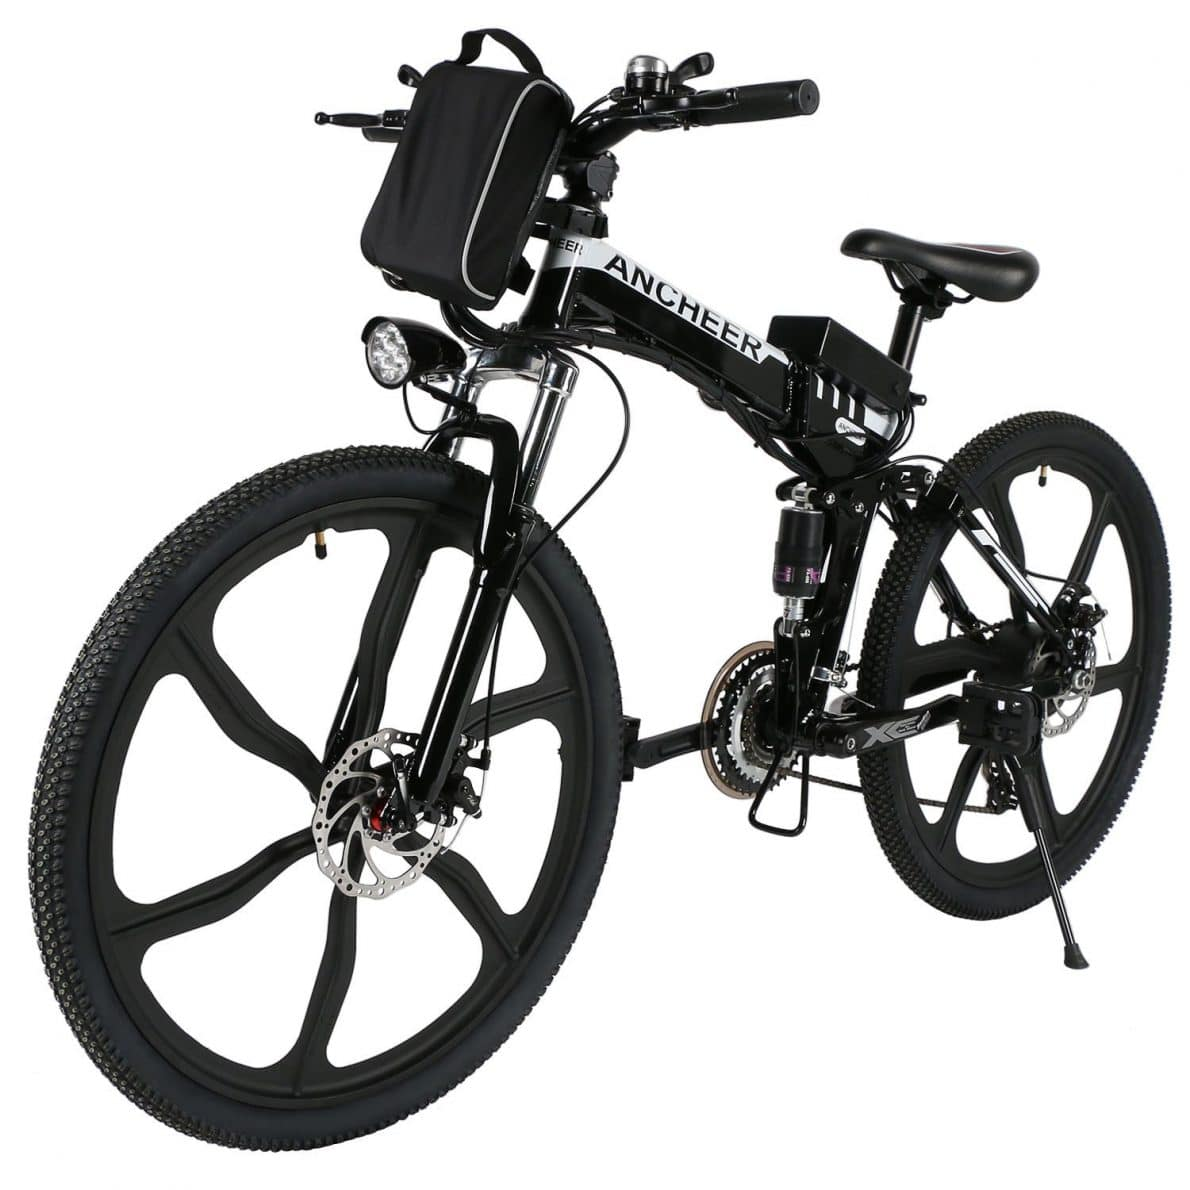 Best Electric Bike >> Top 8 Best Electric Bikes Under 1000 2019